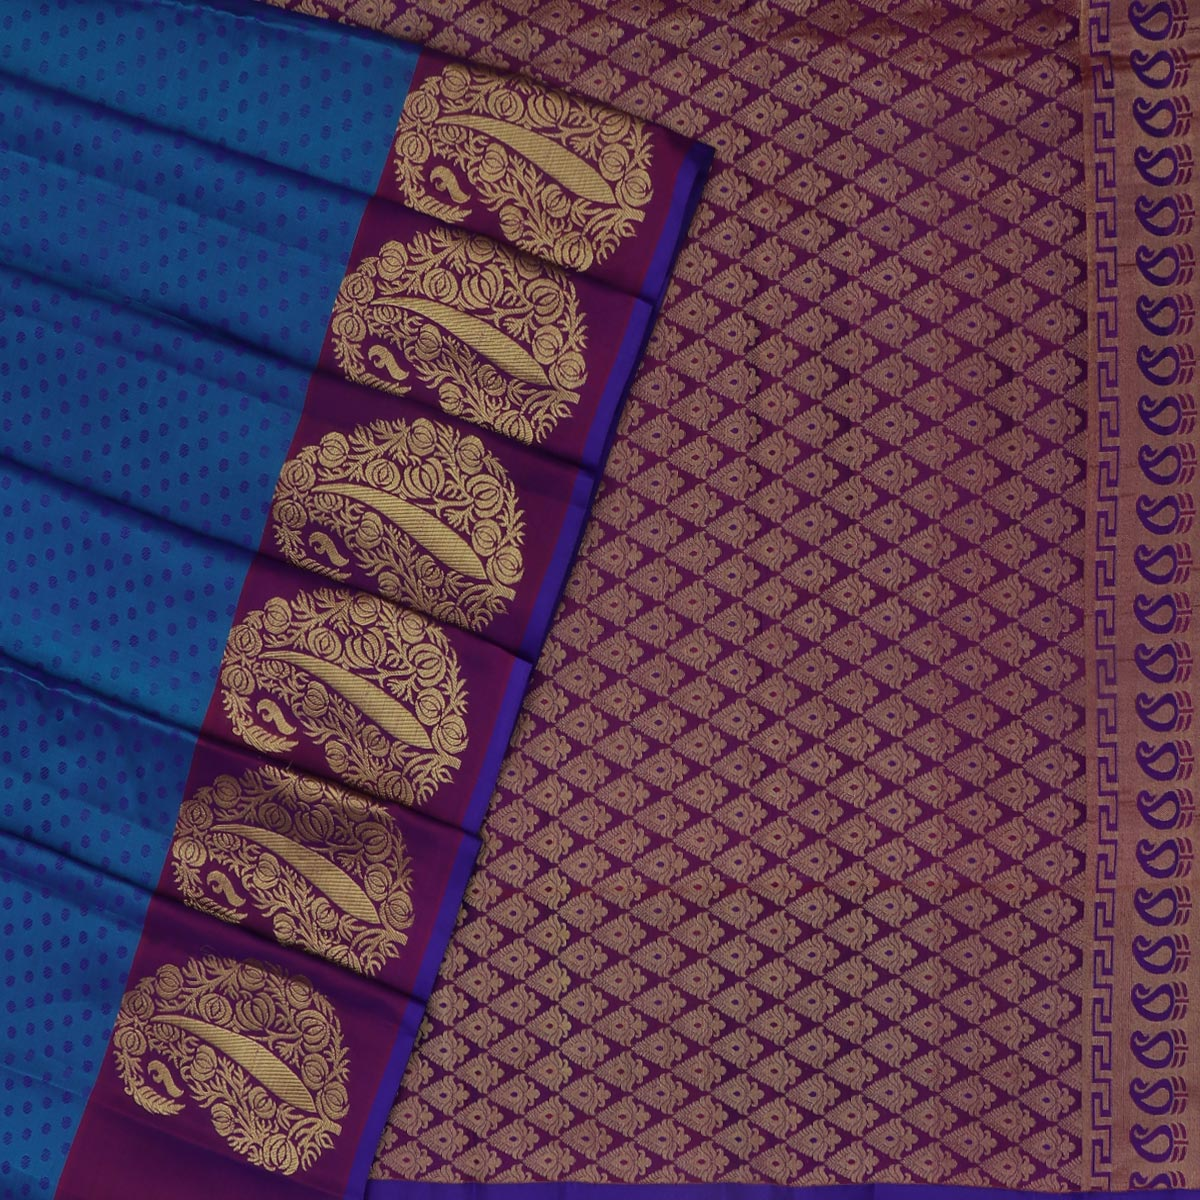 Kanjivaram Silk Saree Peacock Blue and Violet with Mango Zari border